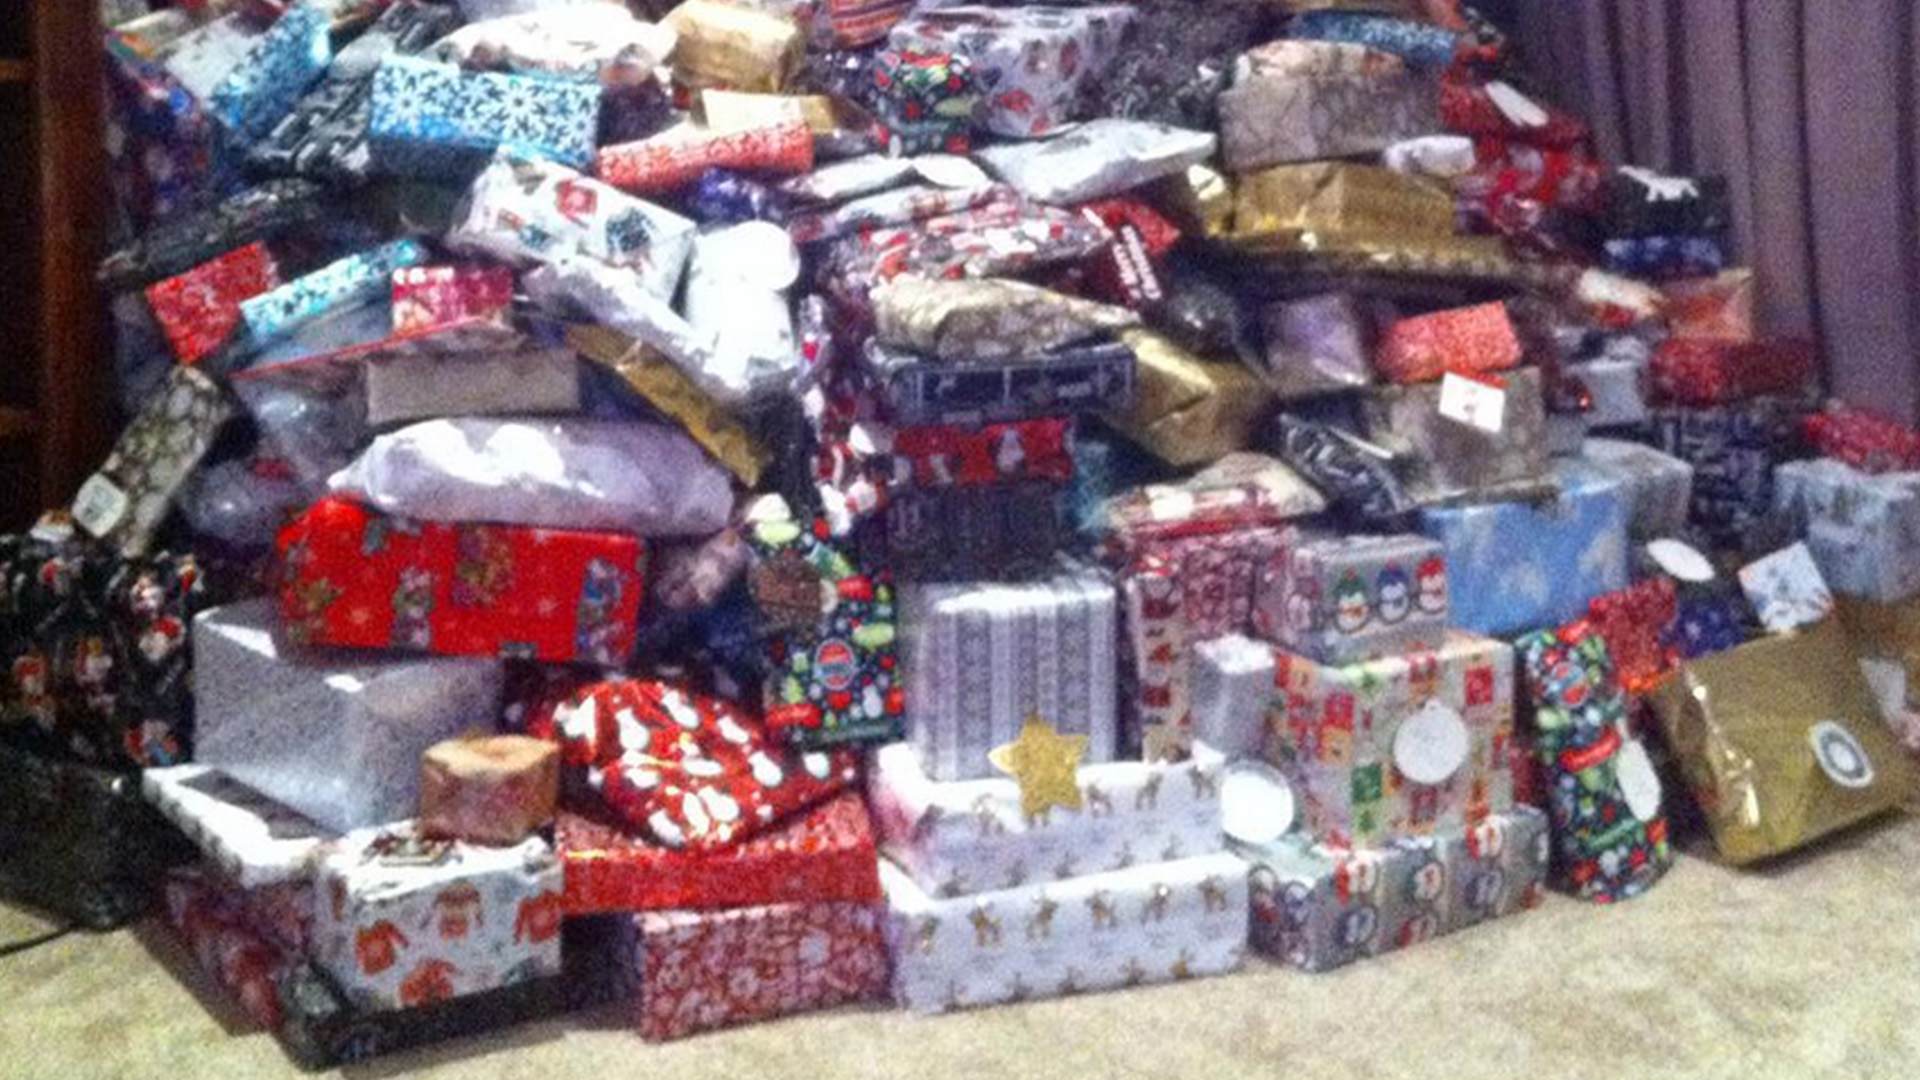 Mom S Photo Of Presents To Spoiled Kids Sparks Outrage